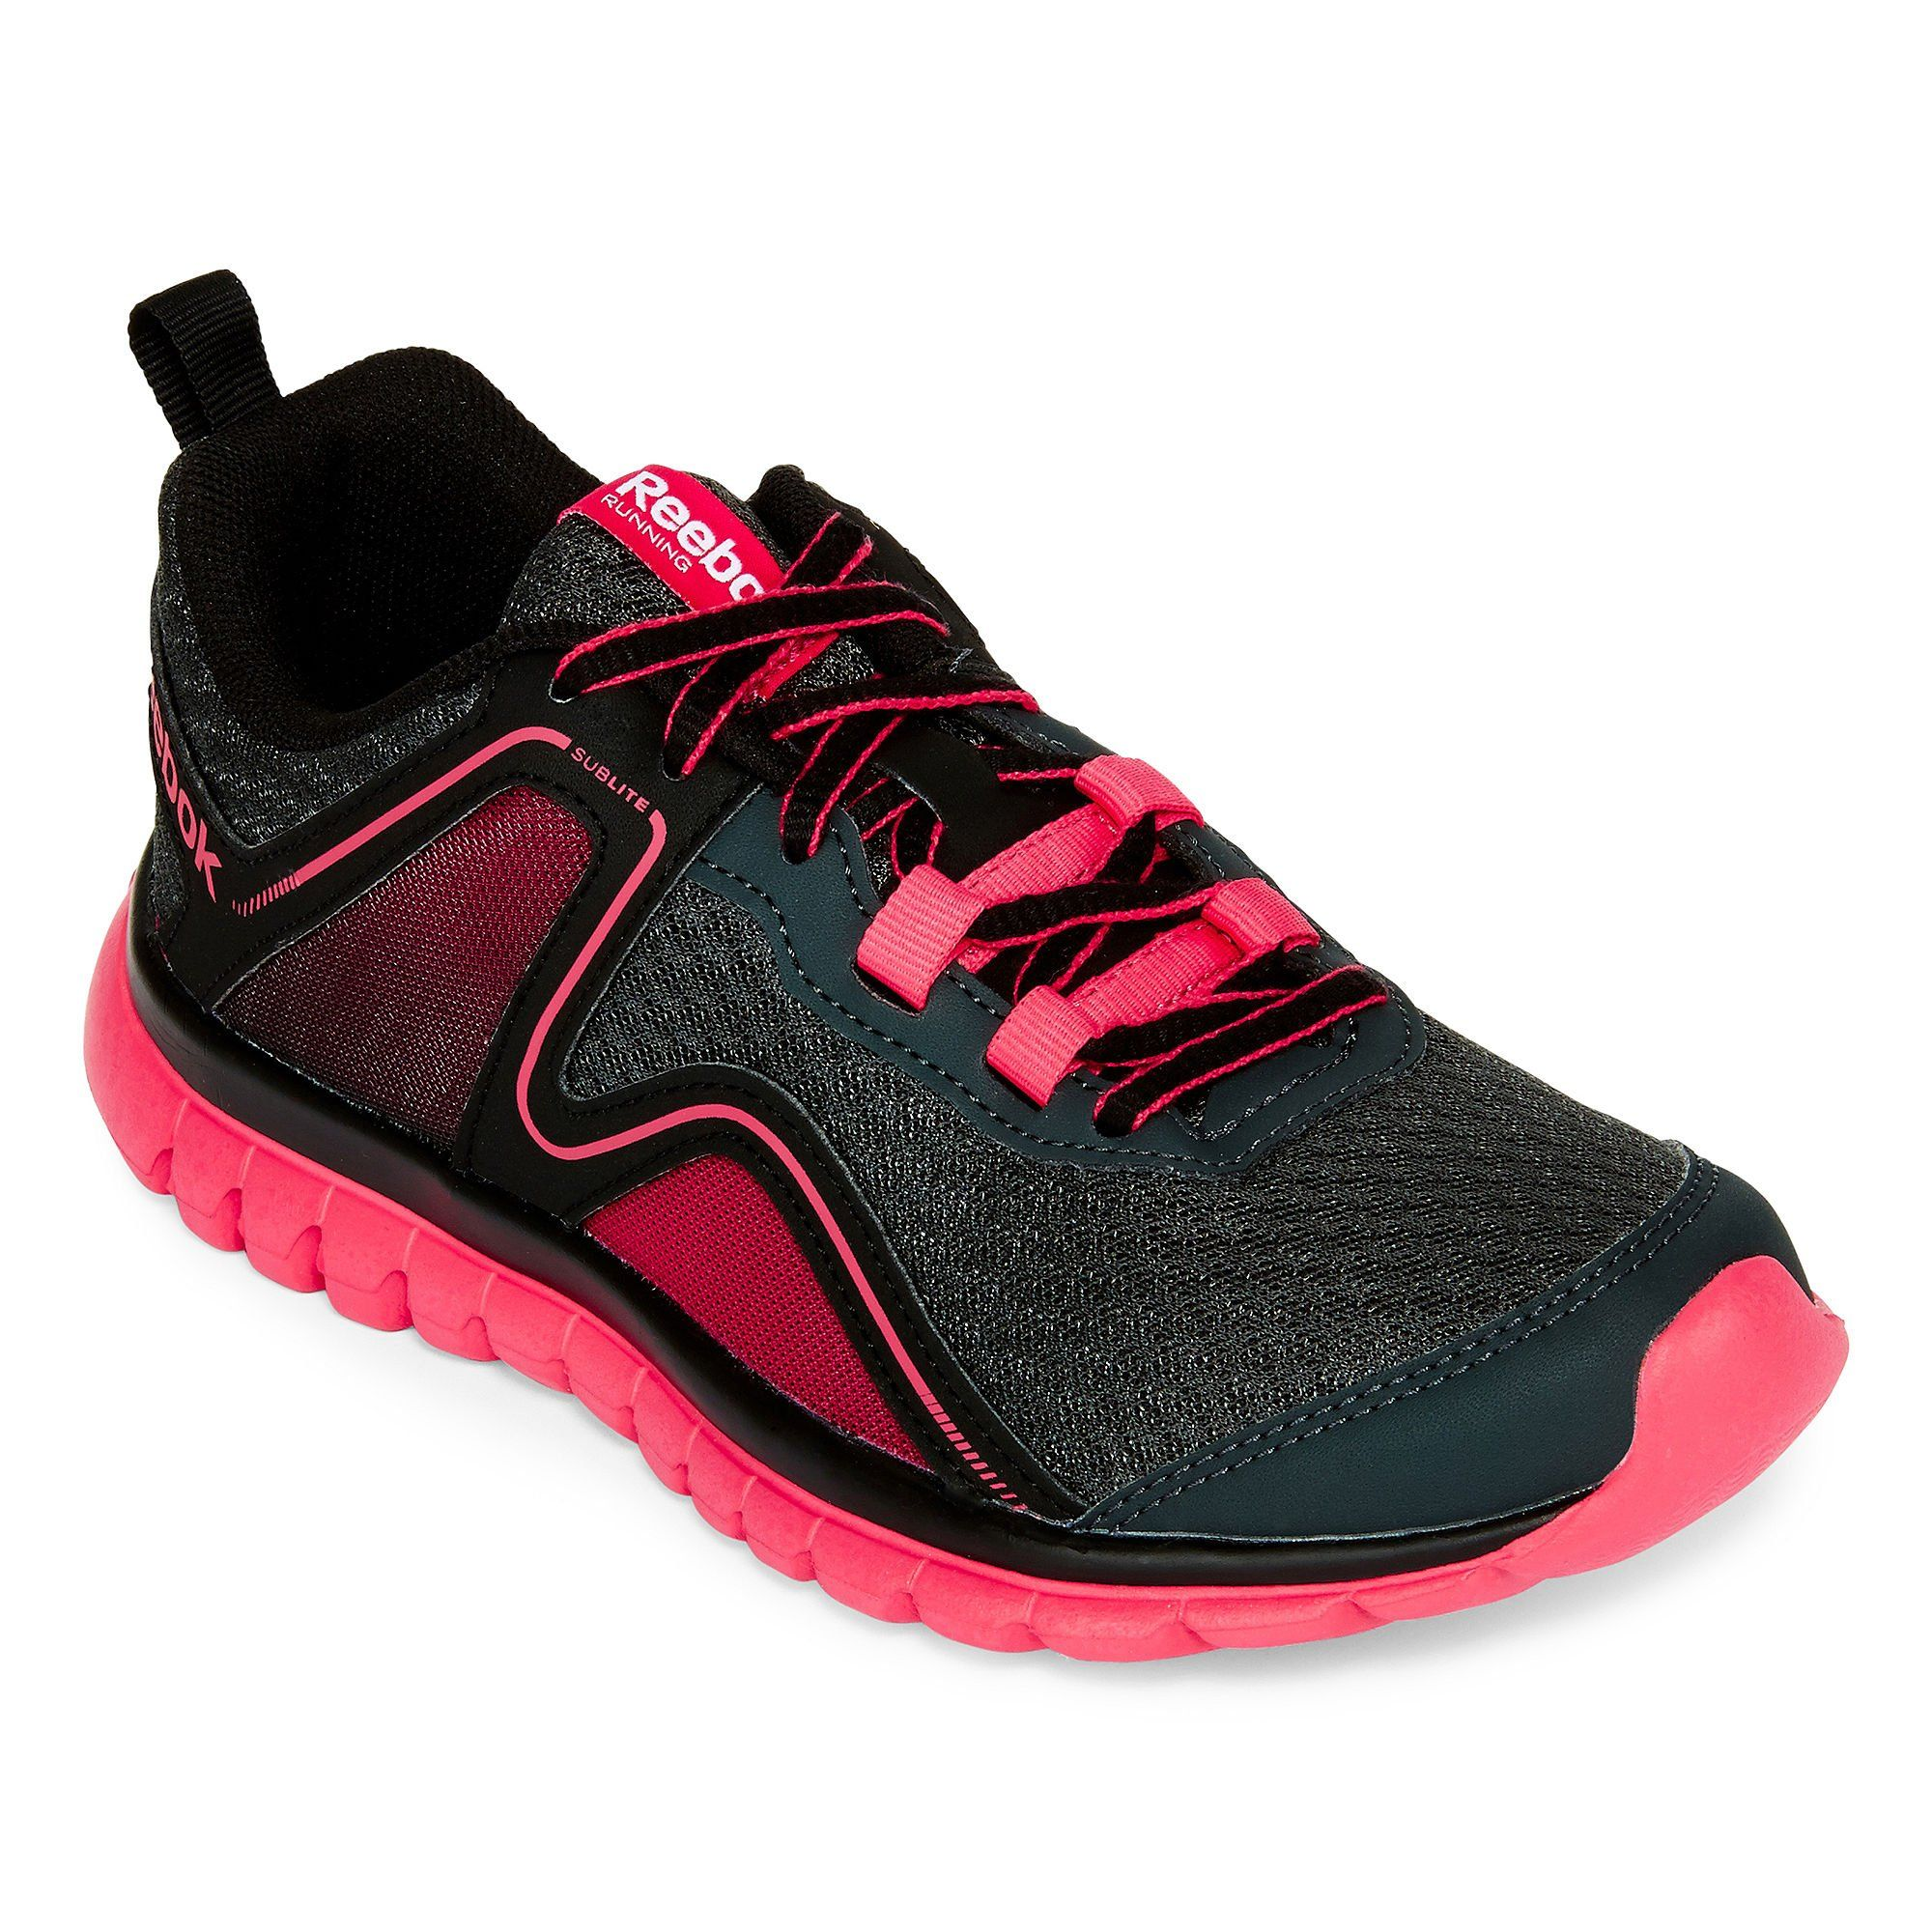 6435d705466f Reebok Sublite Escape 2.0 Womens Running Shoe 9 GravelBlackPink   WomensRunningShoes